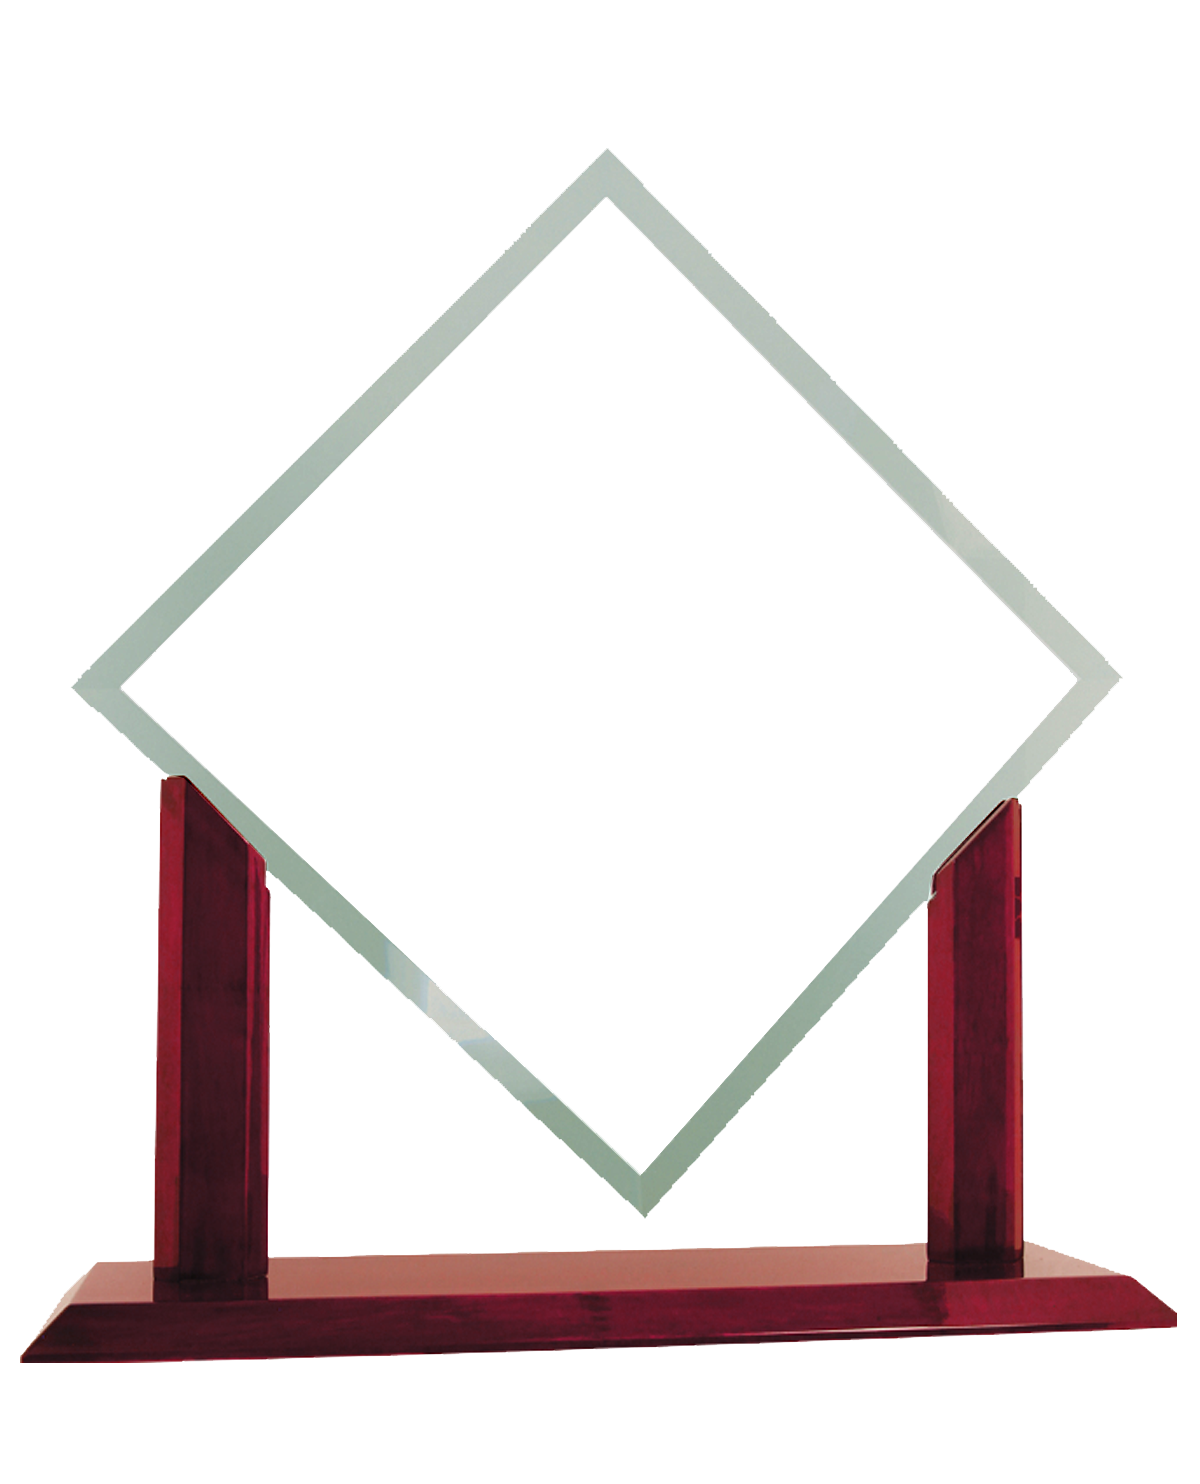 Glass Award Transparent Background PNG Image